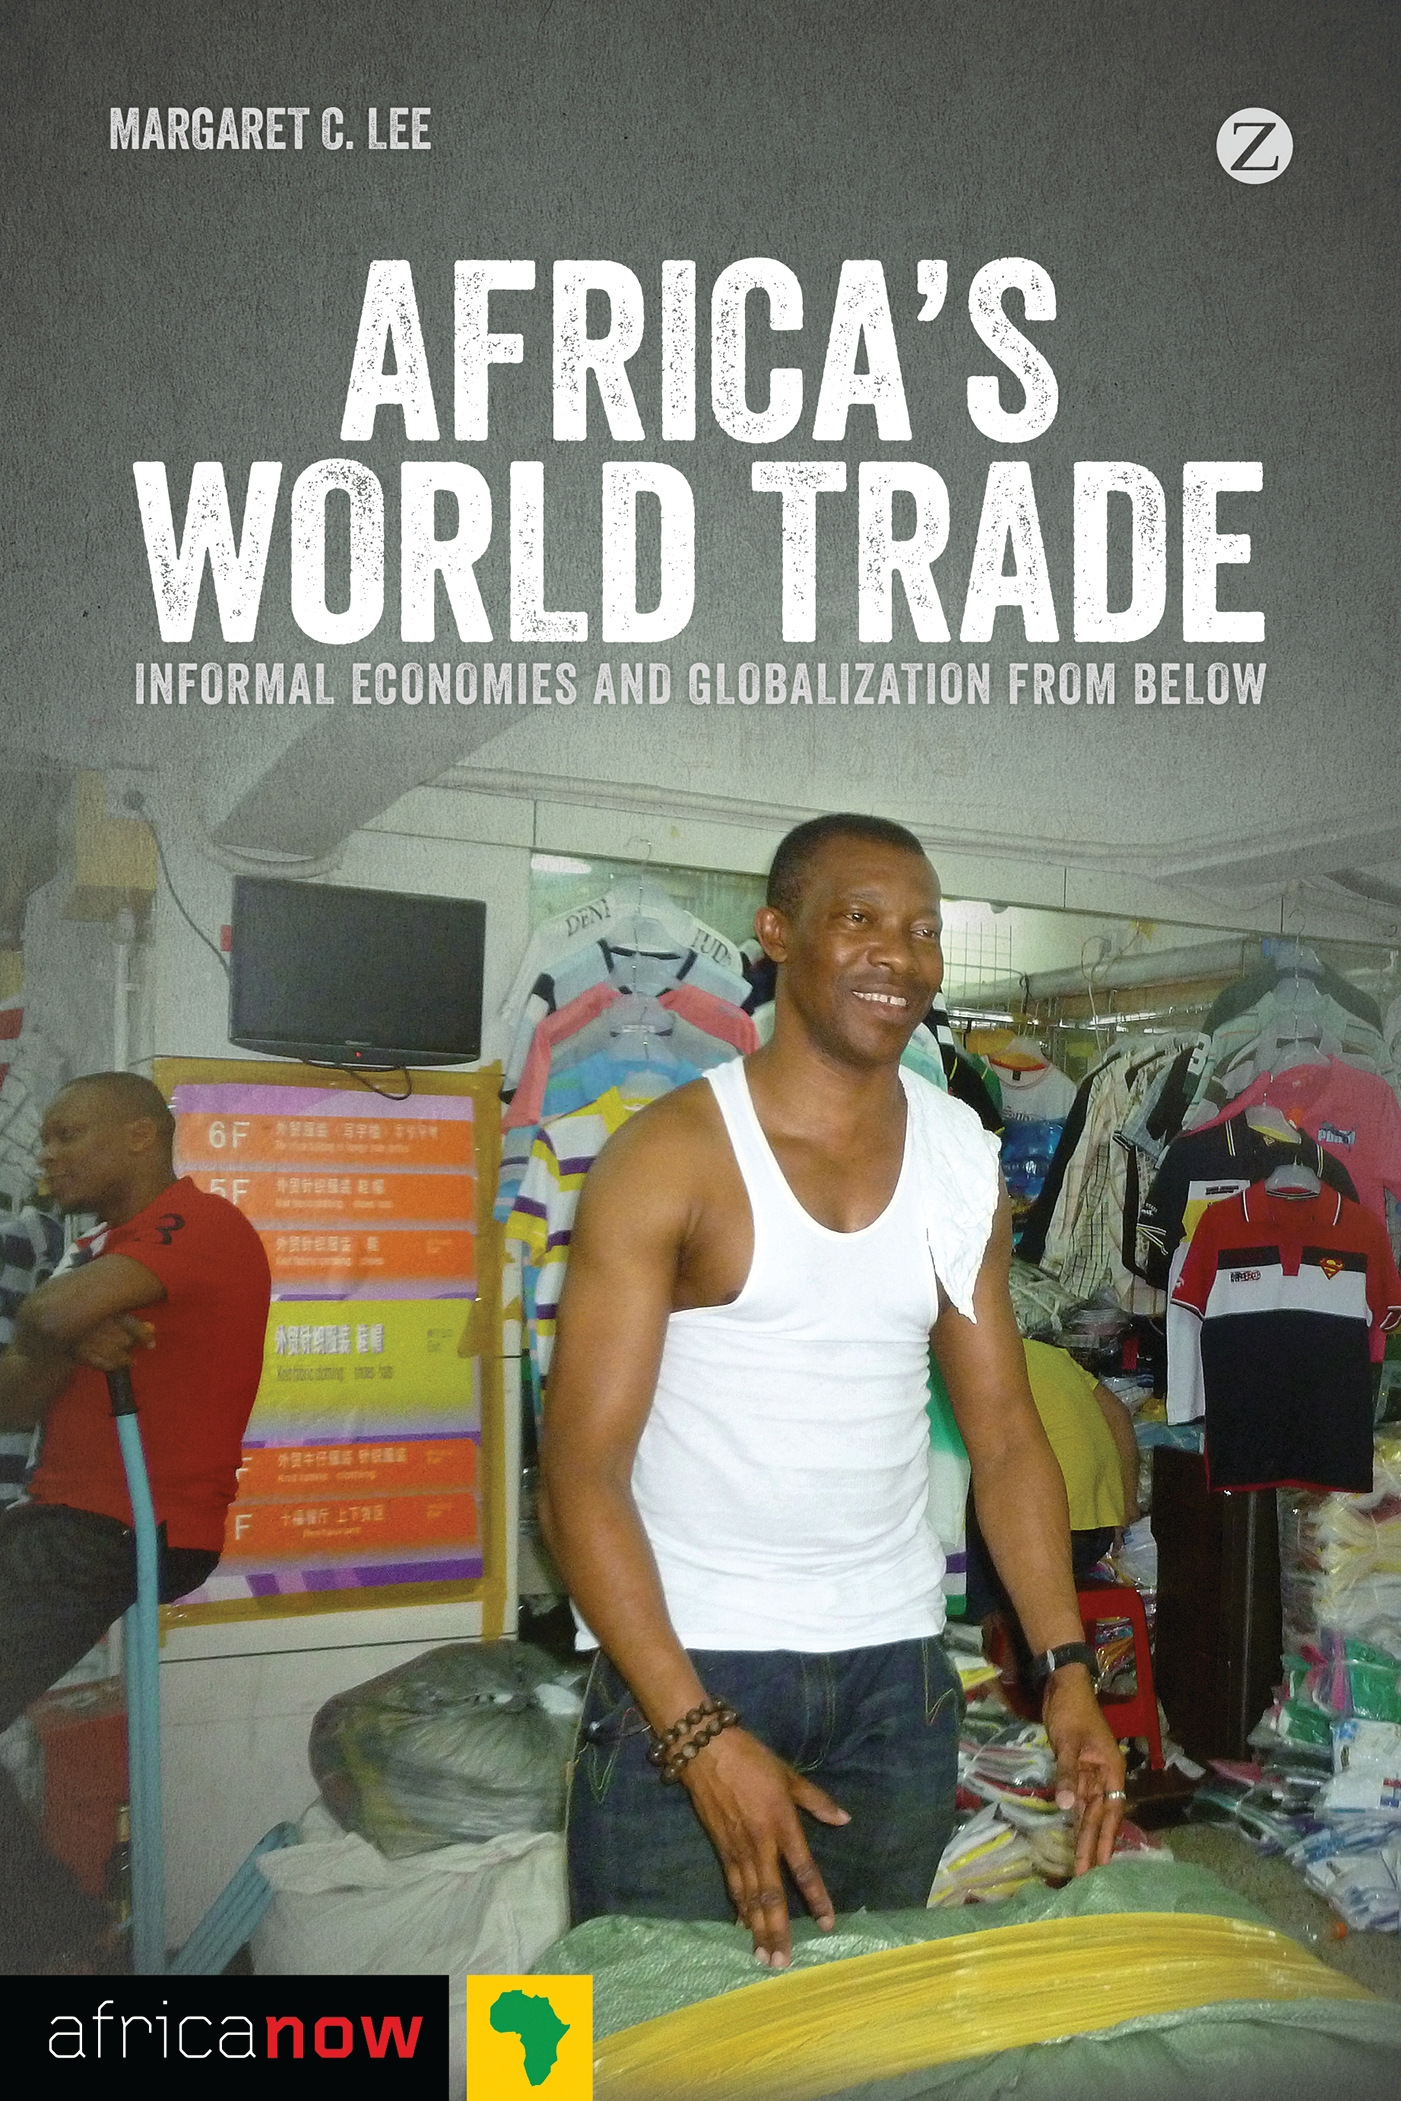 Africa's World Trade